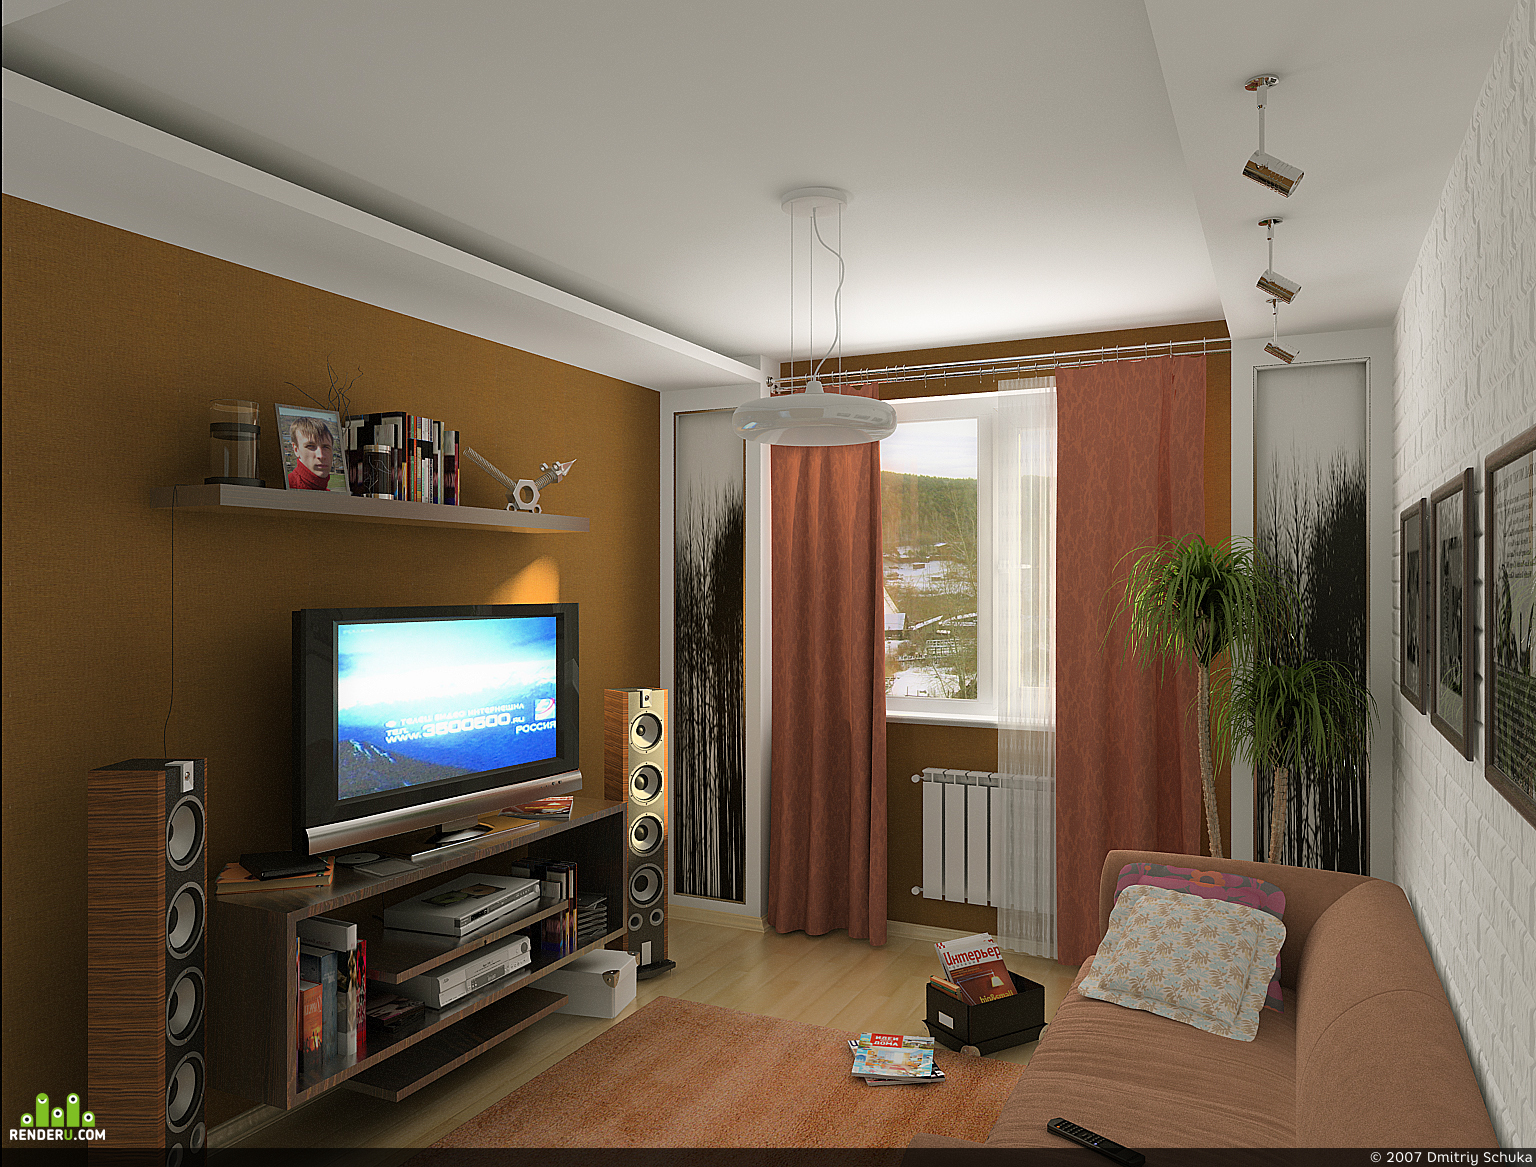 preview My room